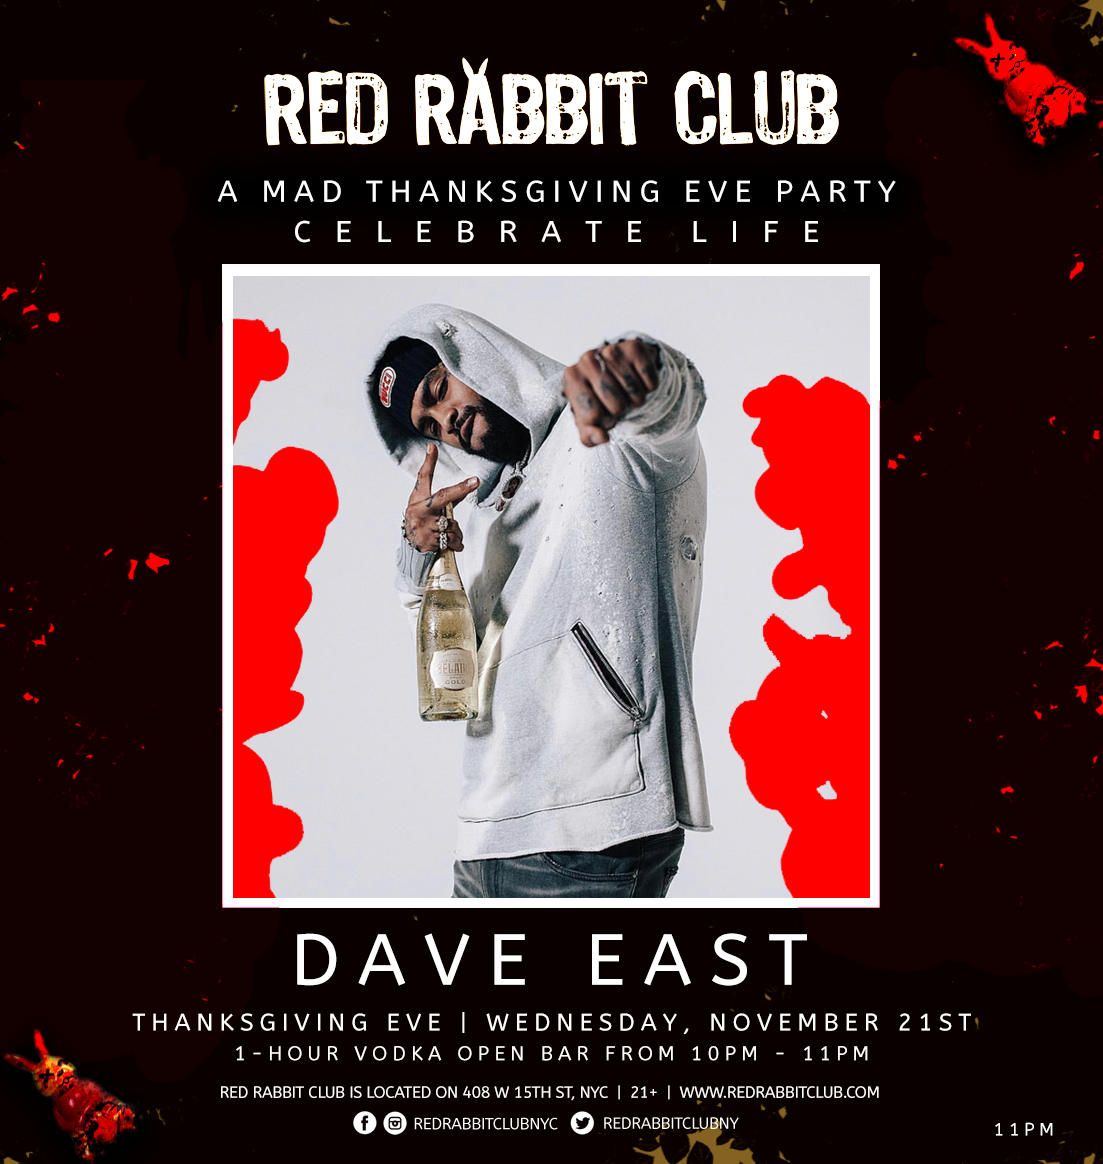 Red Rabbit Club - Dave East - A Mad Thanksgiving Eve Party - Nov 21